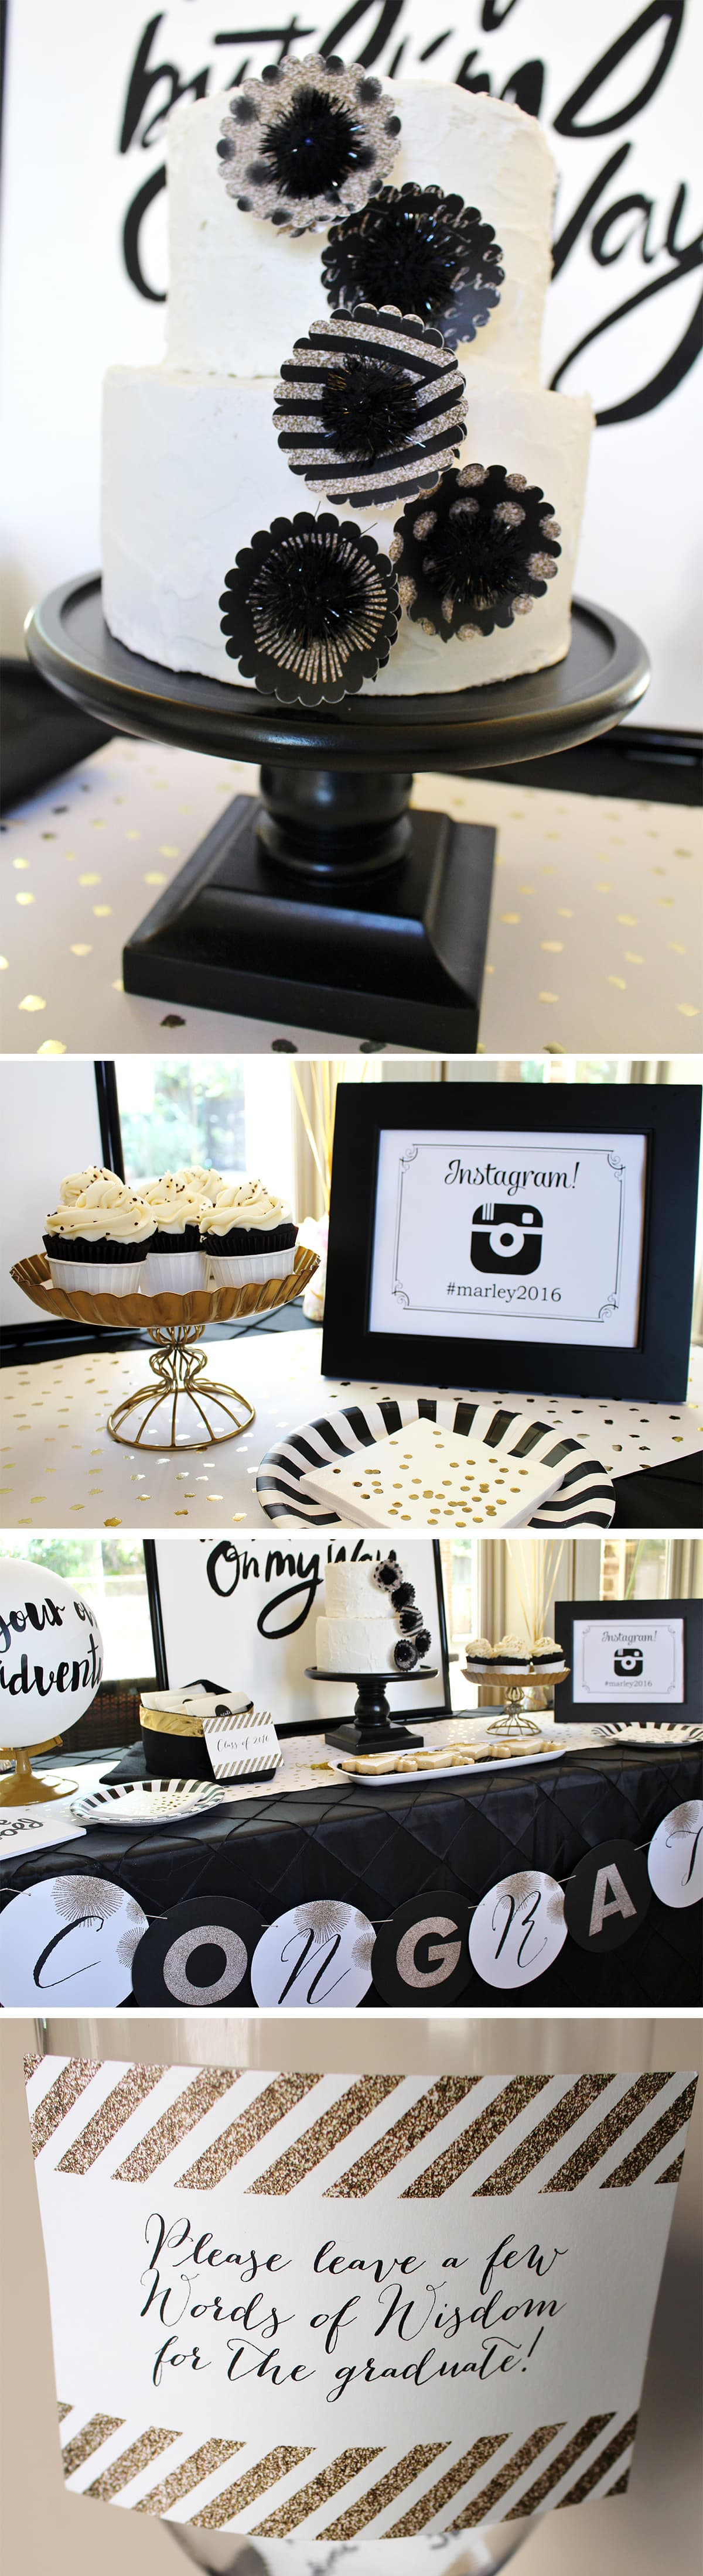 Stylish Graduation Party Details!